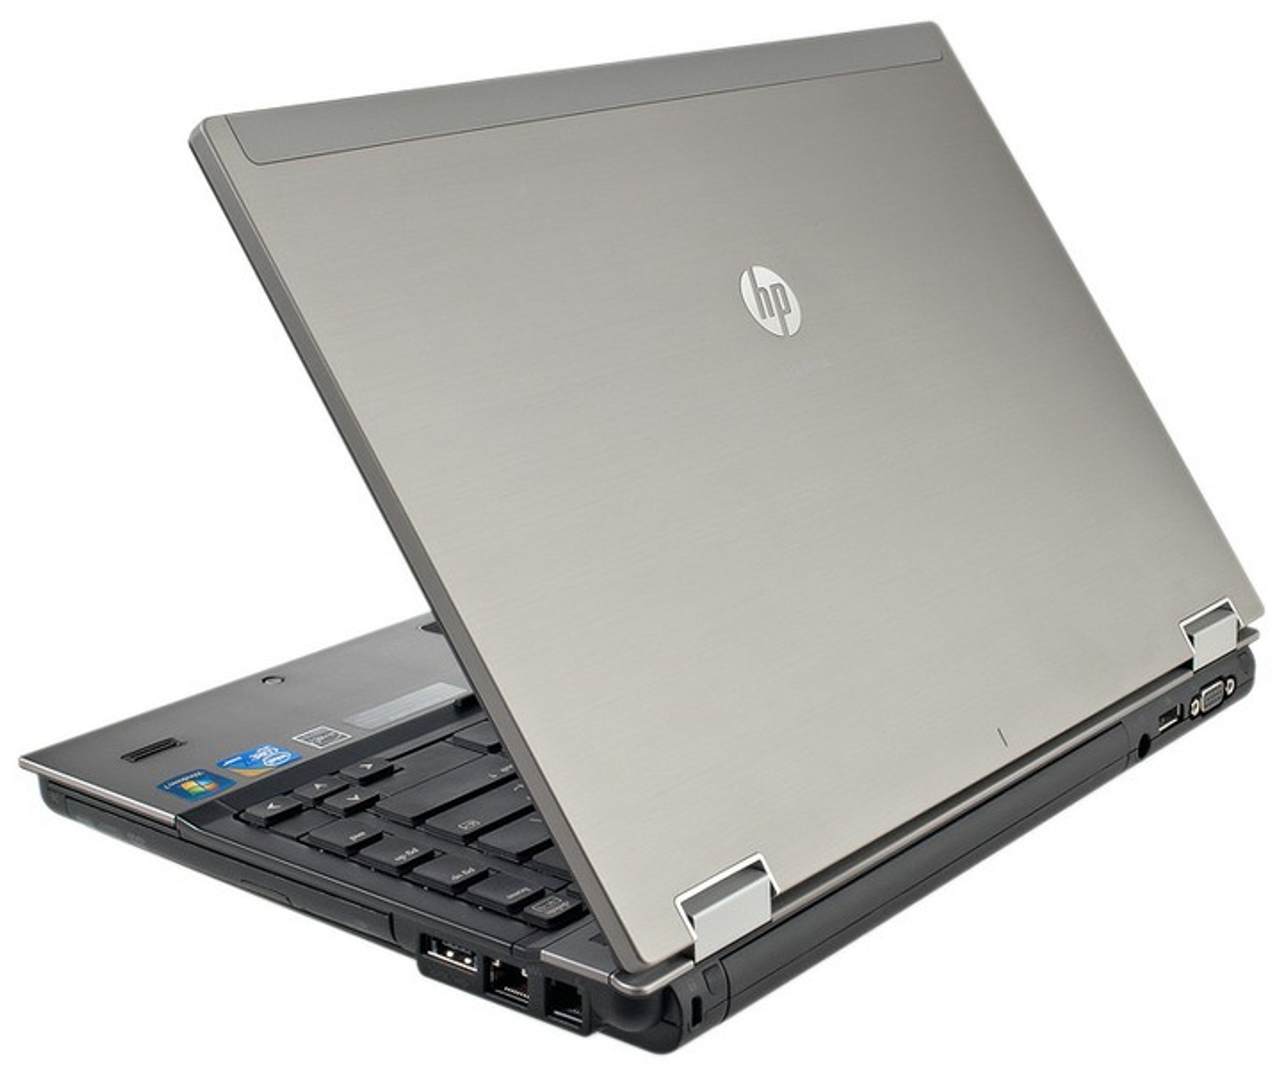 HP Compaq Elitebook 8440p Laptop Core i5 2.4GHz, 4GB Ram, 250GB HDD, DVD-RW, Notebook Windows 7 Pro 64 Notebook